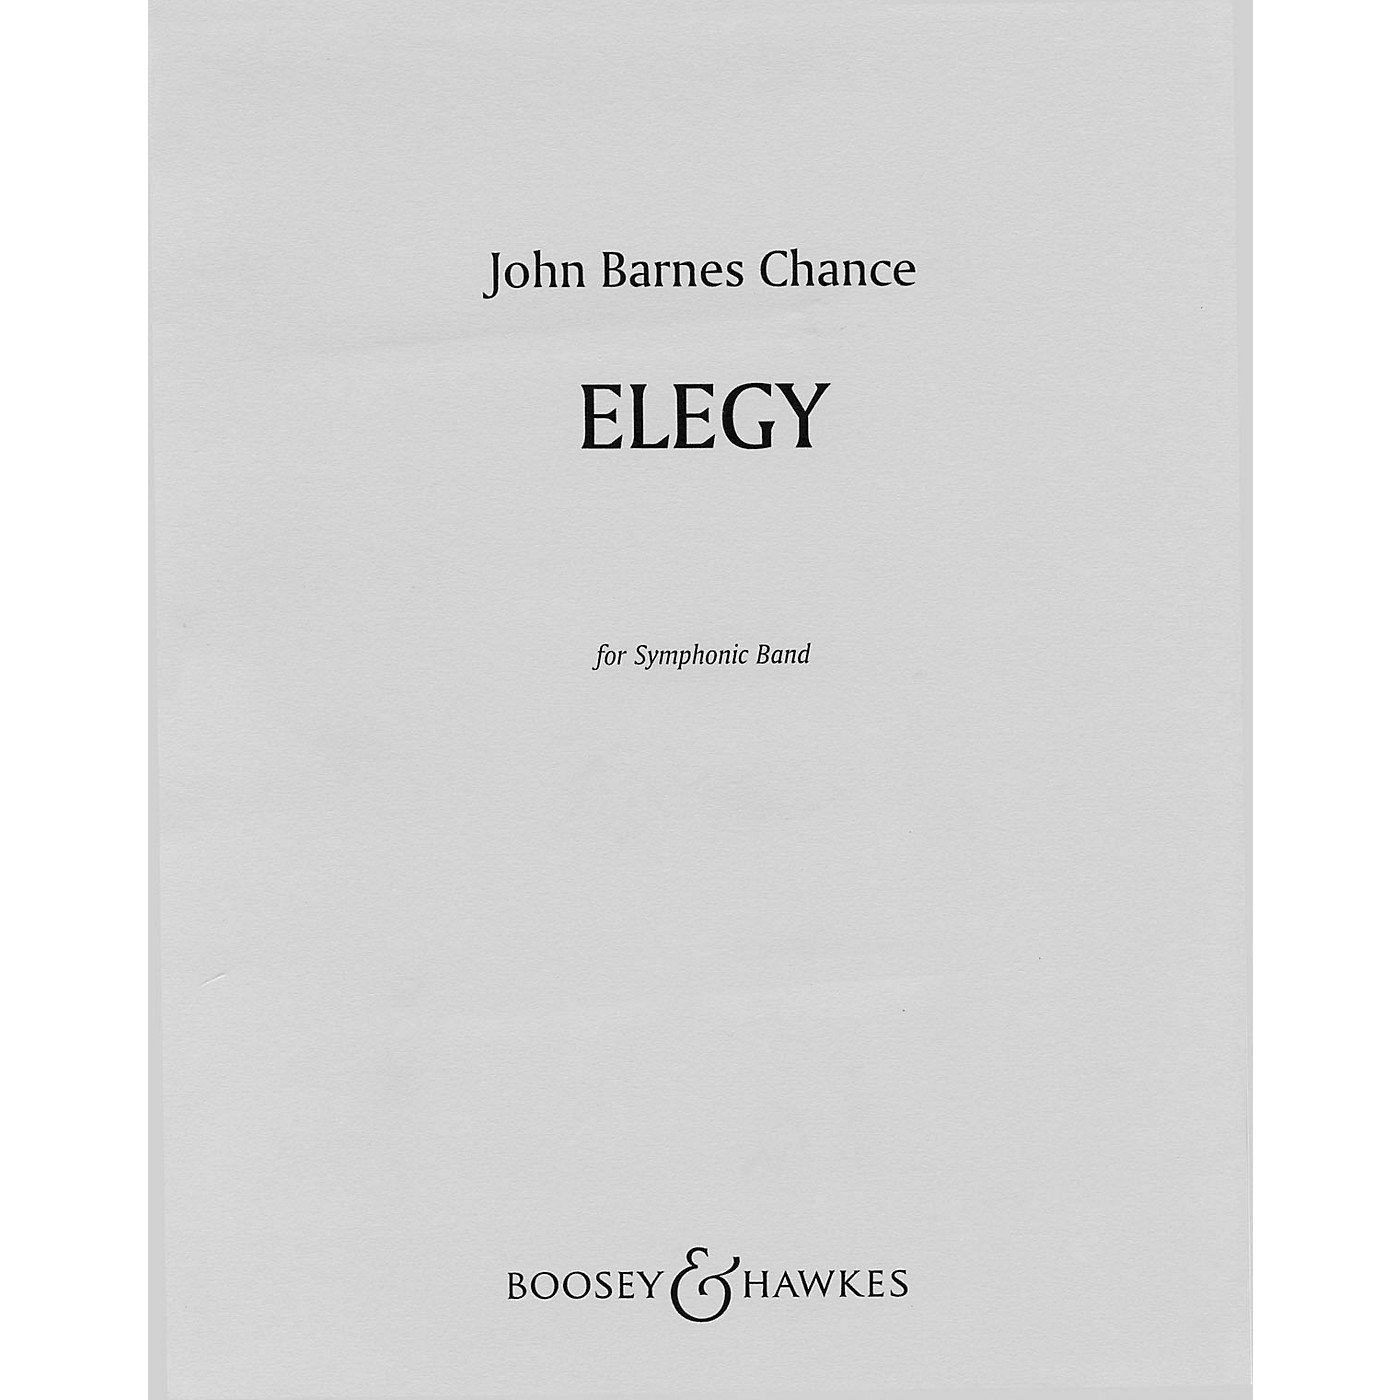 Boosey and Hawkes Elegy (for Symphonic Band) Concert Band Composed by John Barnes Chance thumbnail